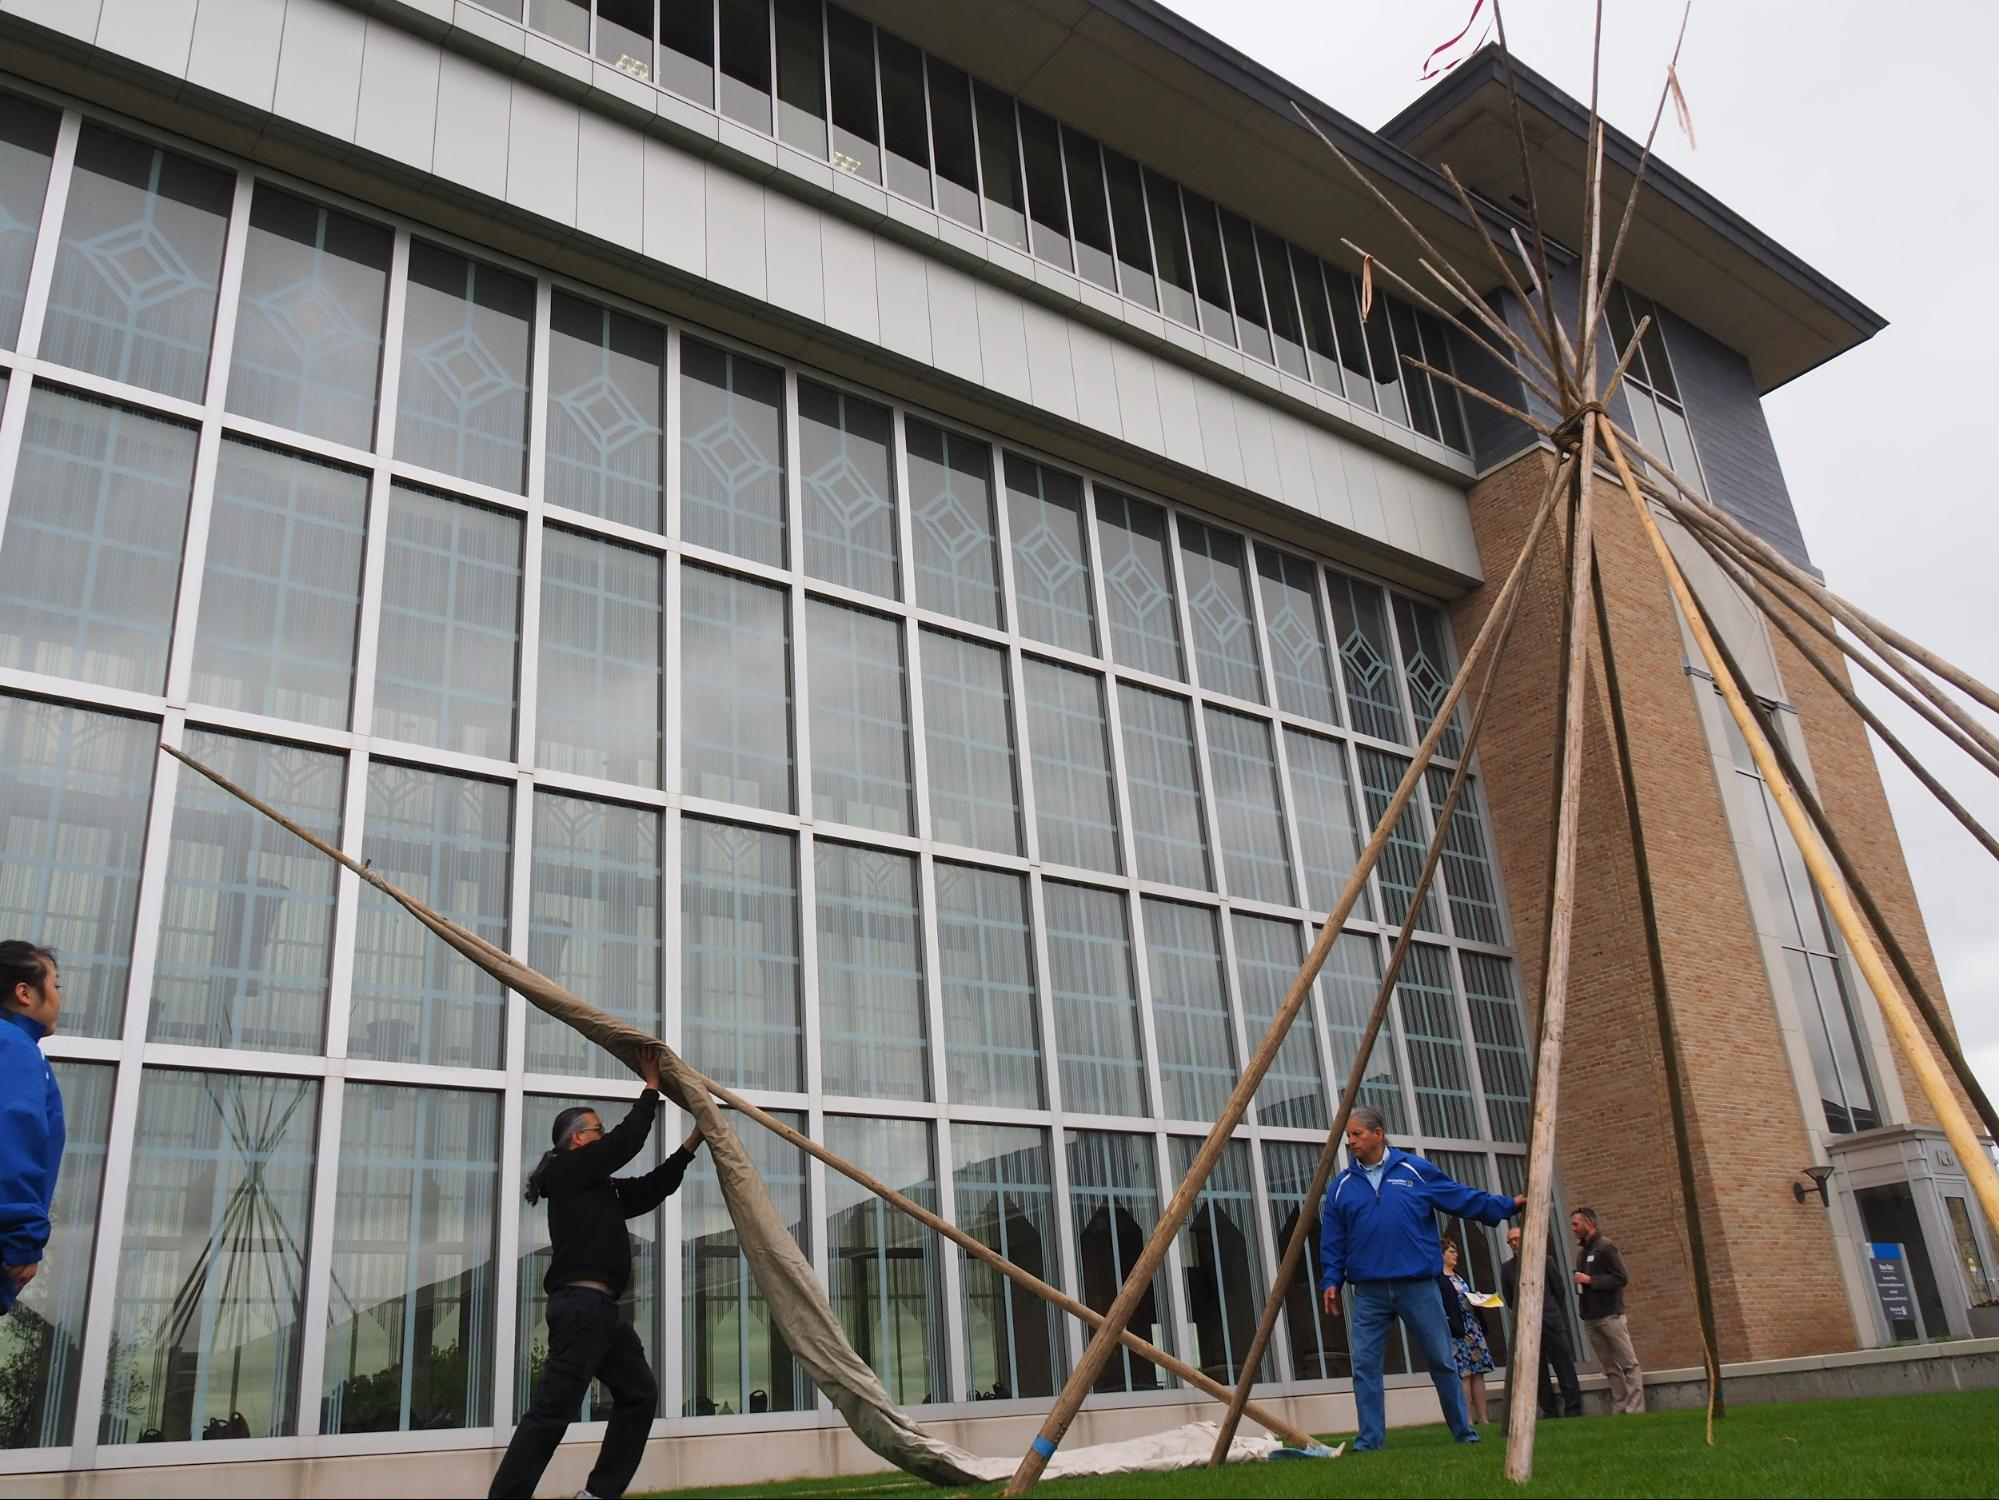 Charlie Stately hoists a lodge pole with the canvas for a tipi on New Main's front lawn on May 23, 2019. The tipi raising opened American Indian Heritage Month activities on Metro State's St. Paul campus. Stately owns Woodland Indian Crafts at the Minneapolis American Indian Center. For the last decade, he has shared his tipis and expertise with the university community. (April Carlson / The Metropolitan)